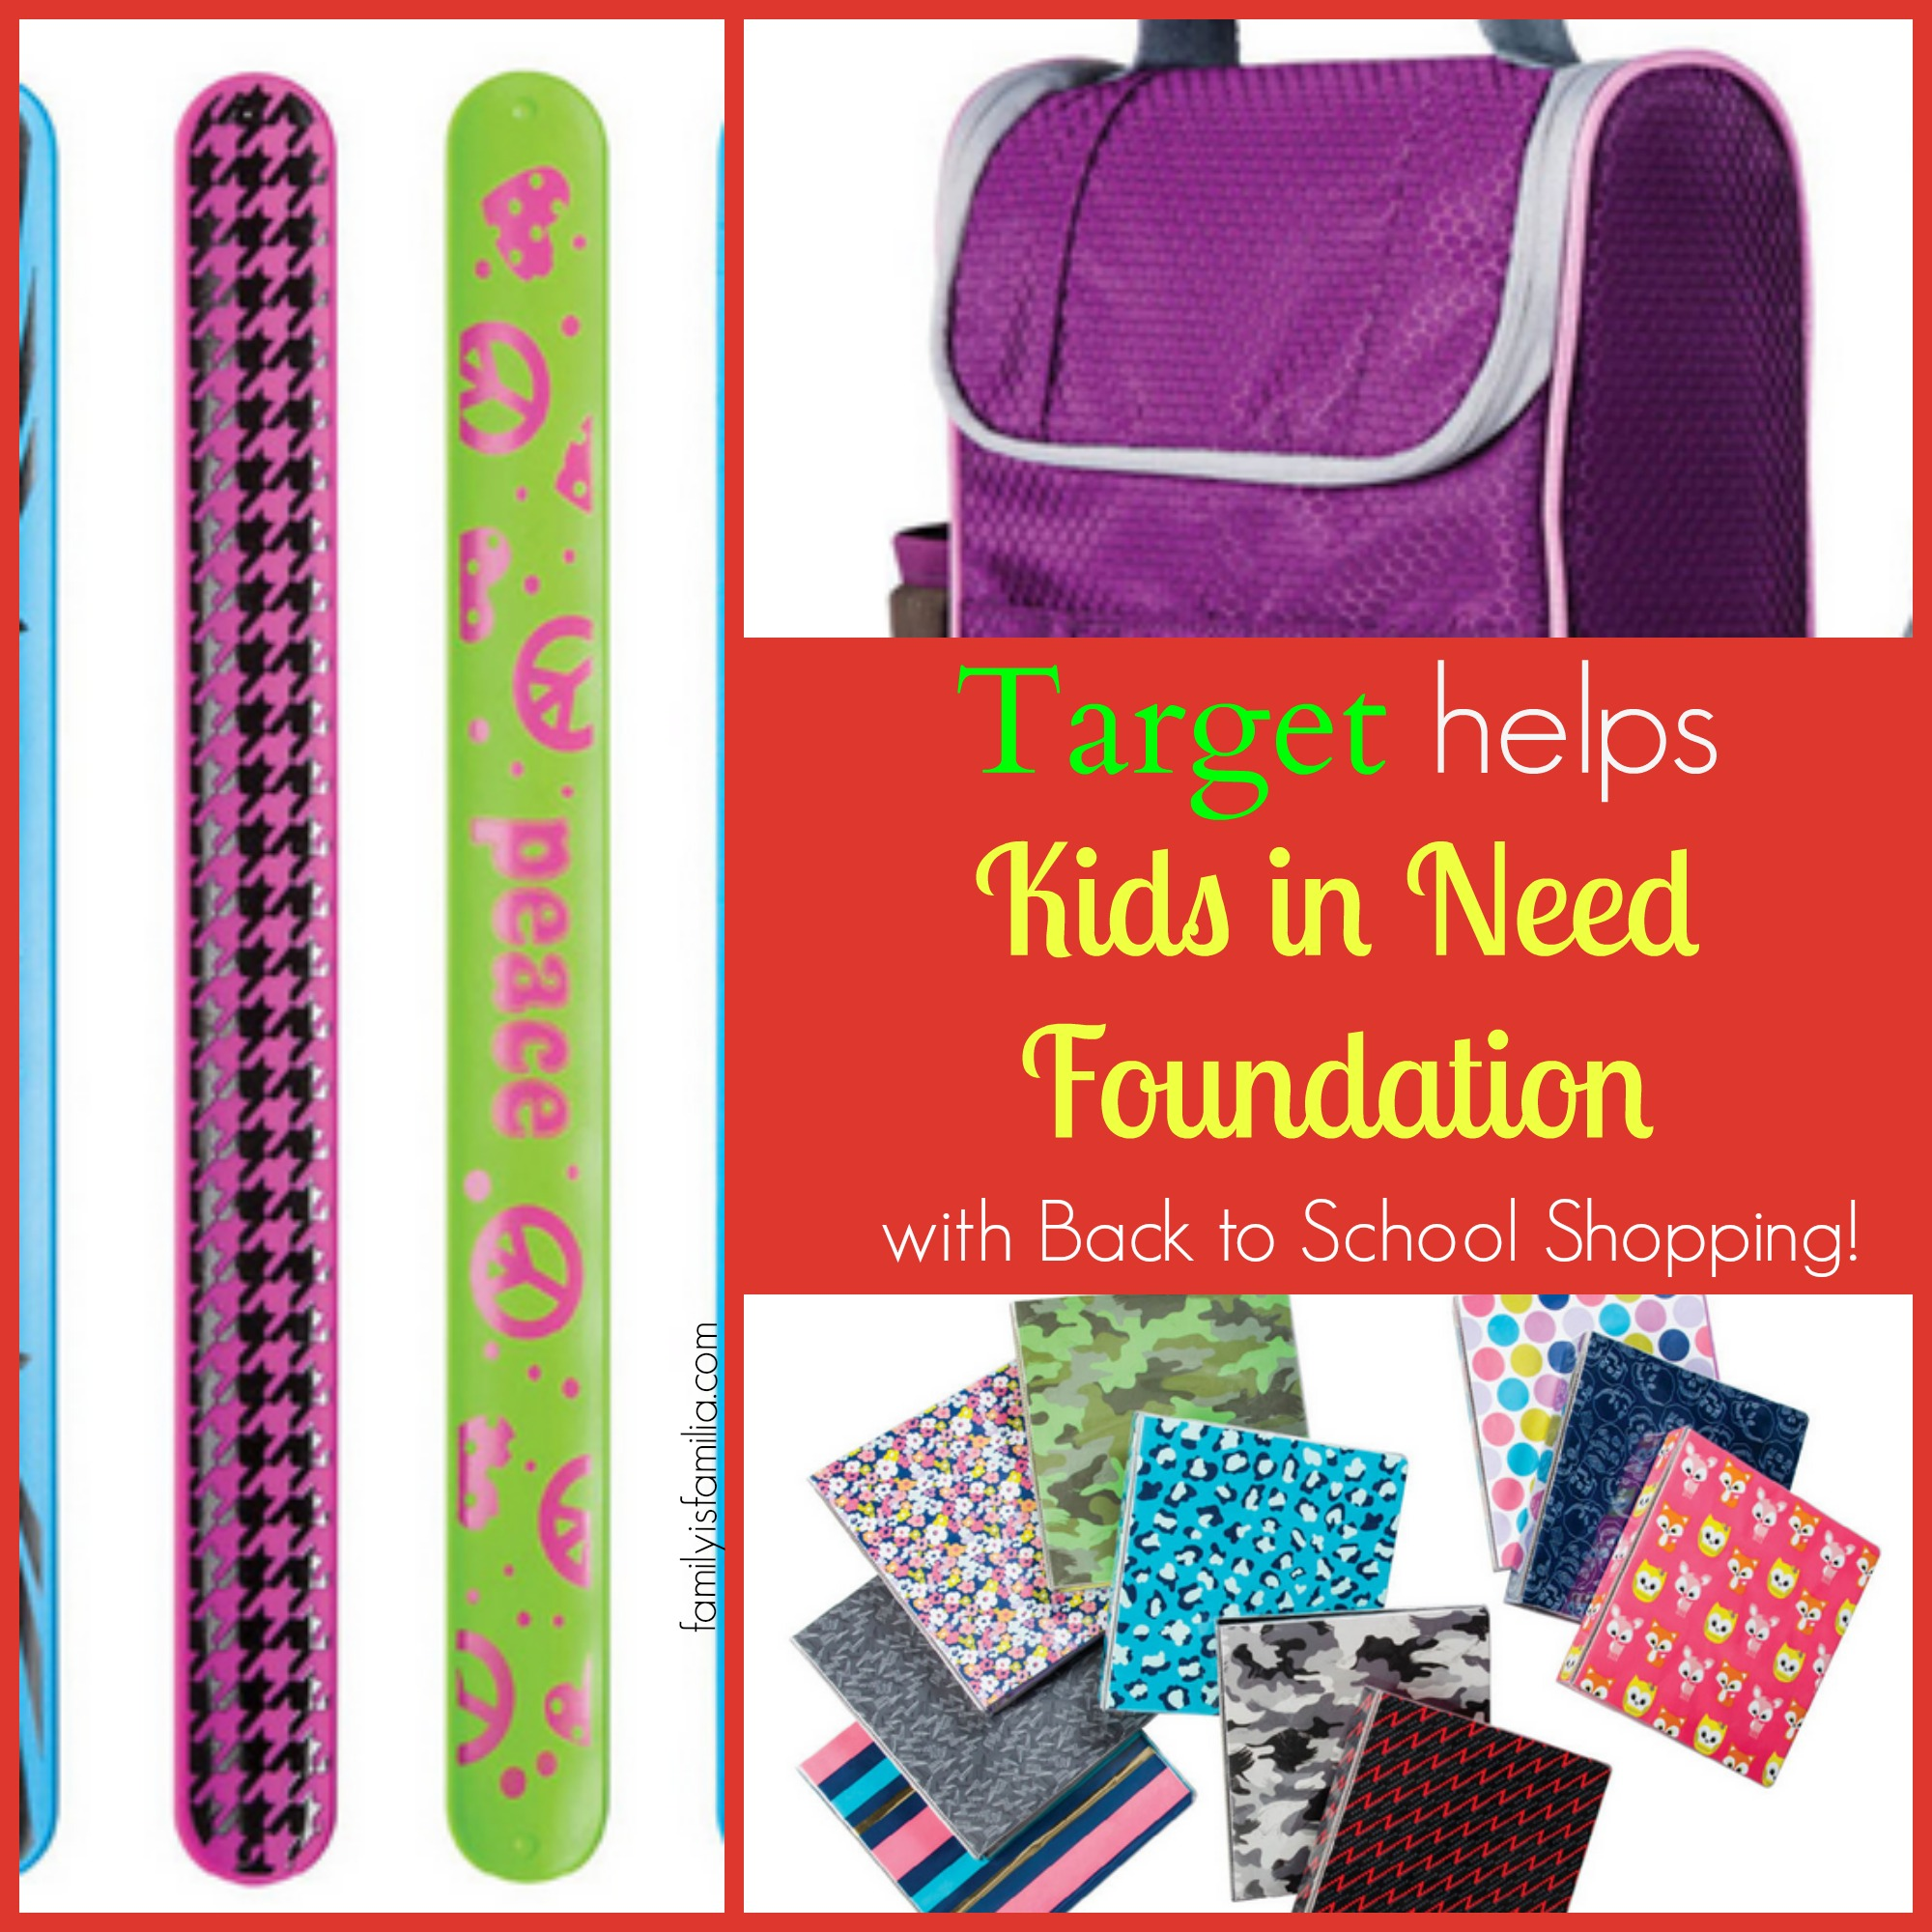 target-helps-kids-need-foundation